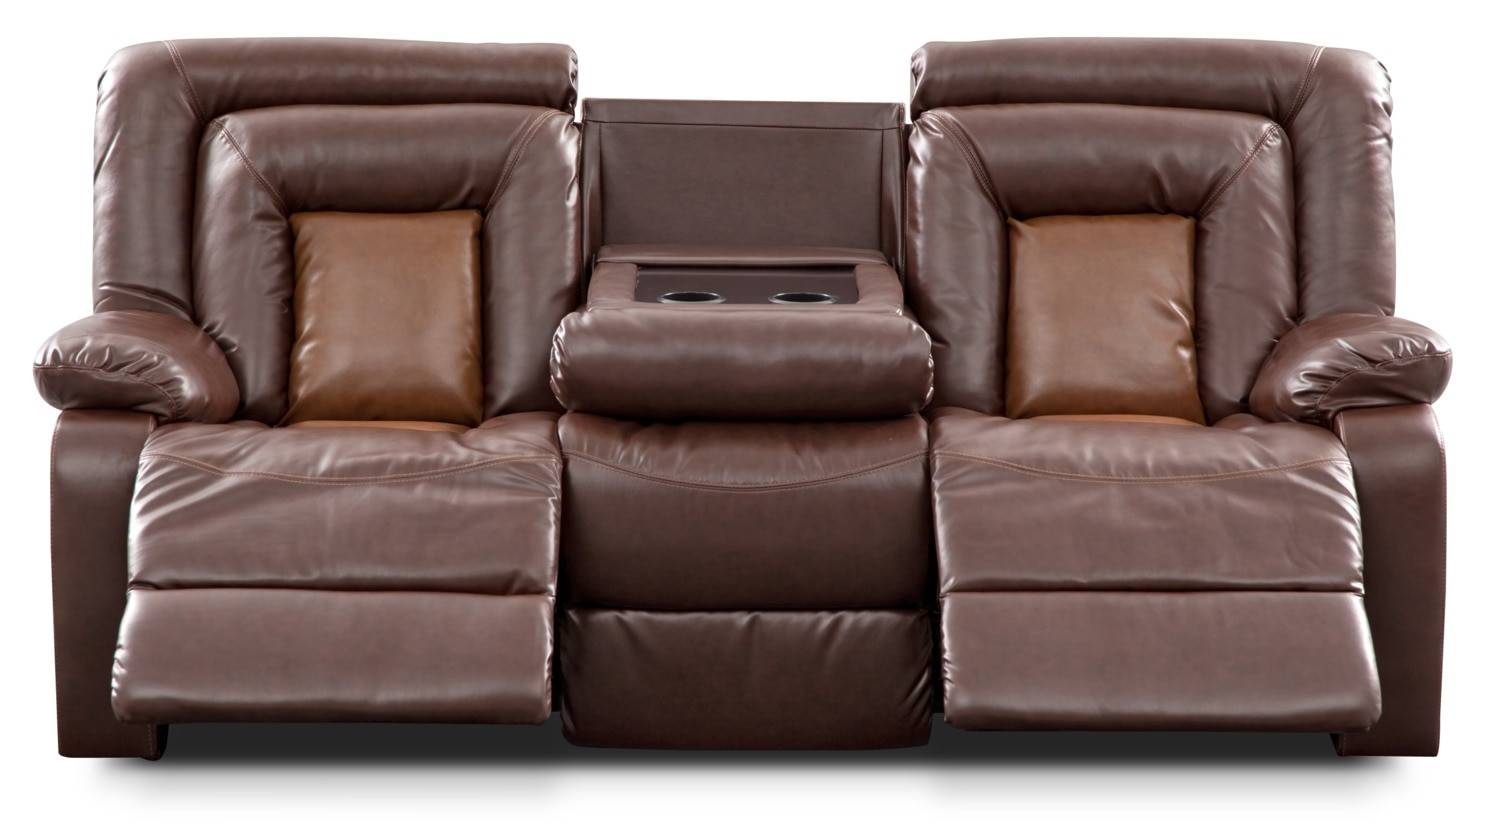 Sofas Center : Reclining Sofa With Console Tony Home Theatre Intended For Sofas With Consoles (View 23 of 30)